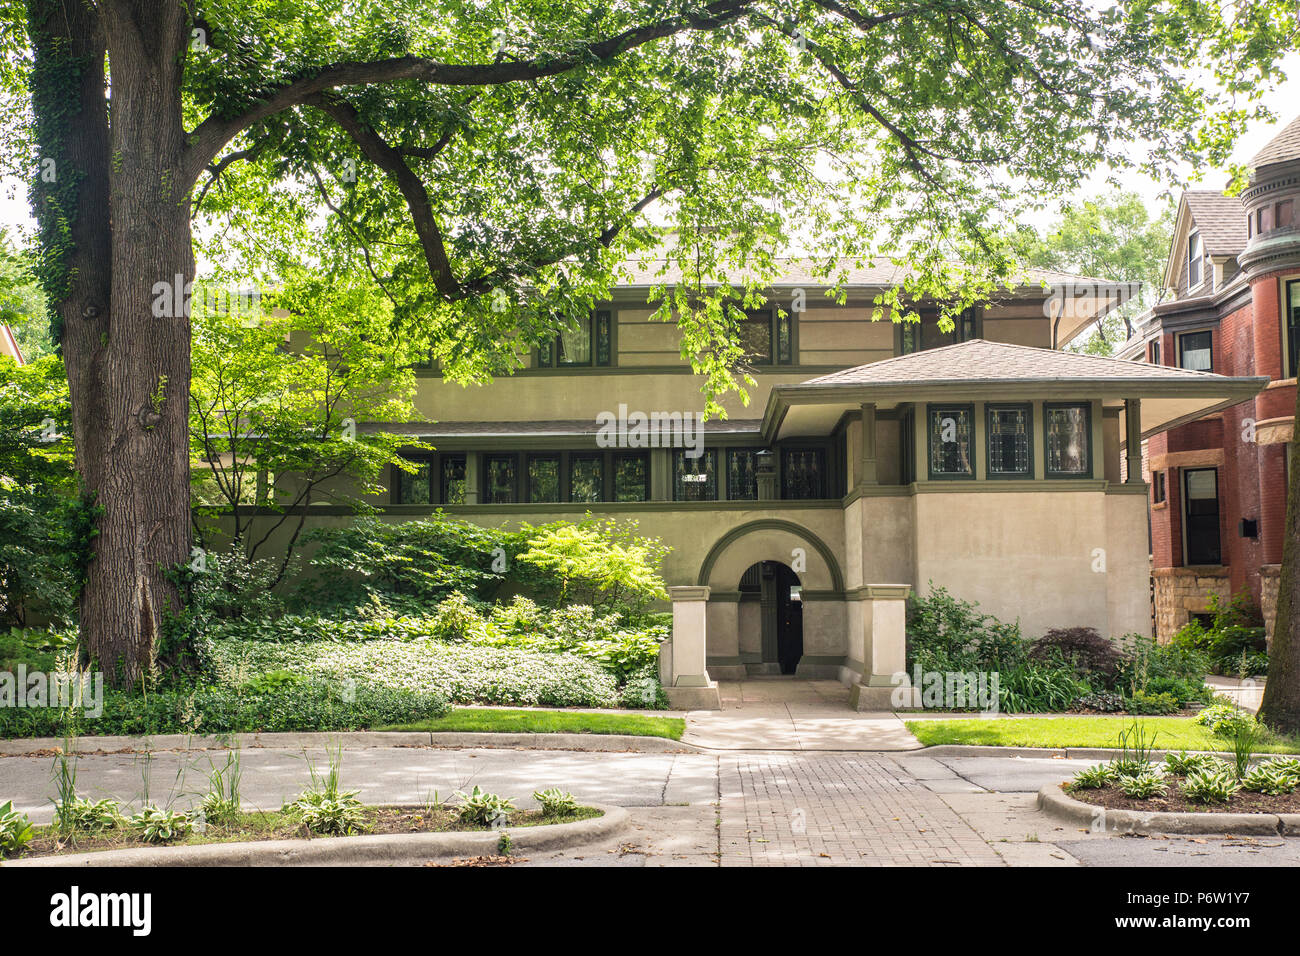 OAK PARK, ILLINOIS - JUNE 25, 2018: Street view of the The Frank Thomas Home designed by renowned architect, Frank Lloyd Wright. - Stock Image